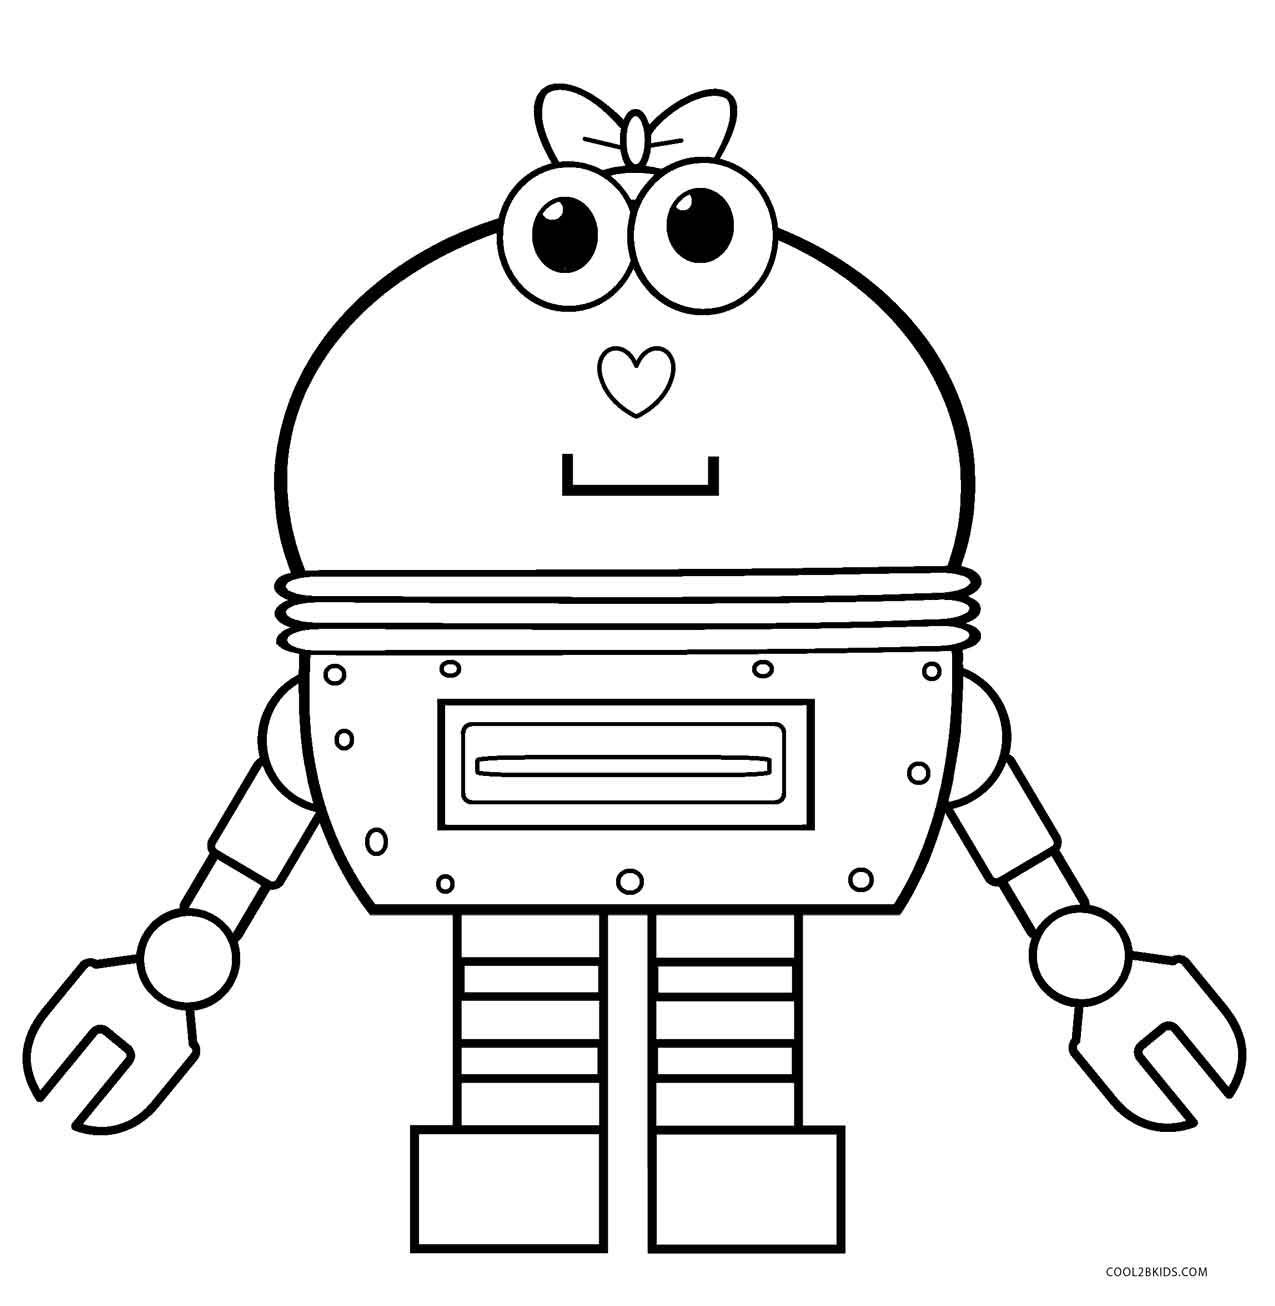 robot coloring picture free printable robot coloring pages for kids cool2bkids coloring picture robot